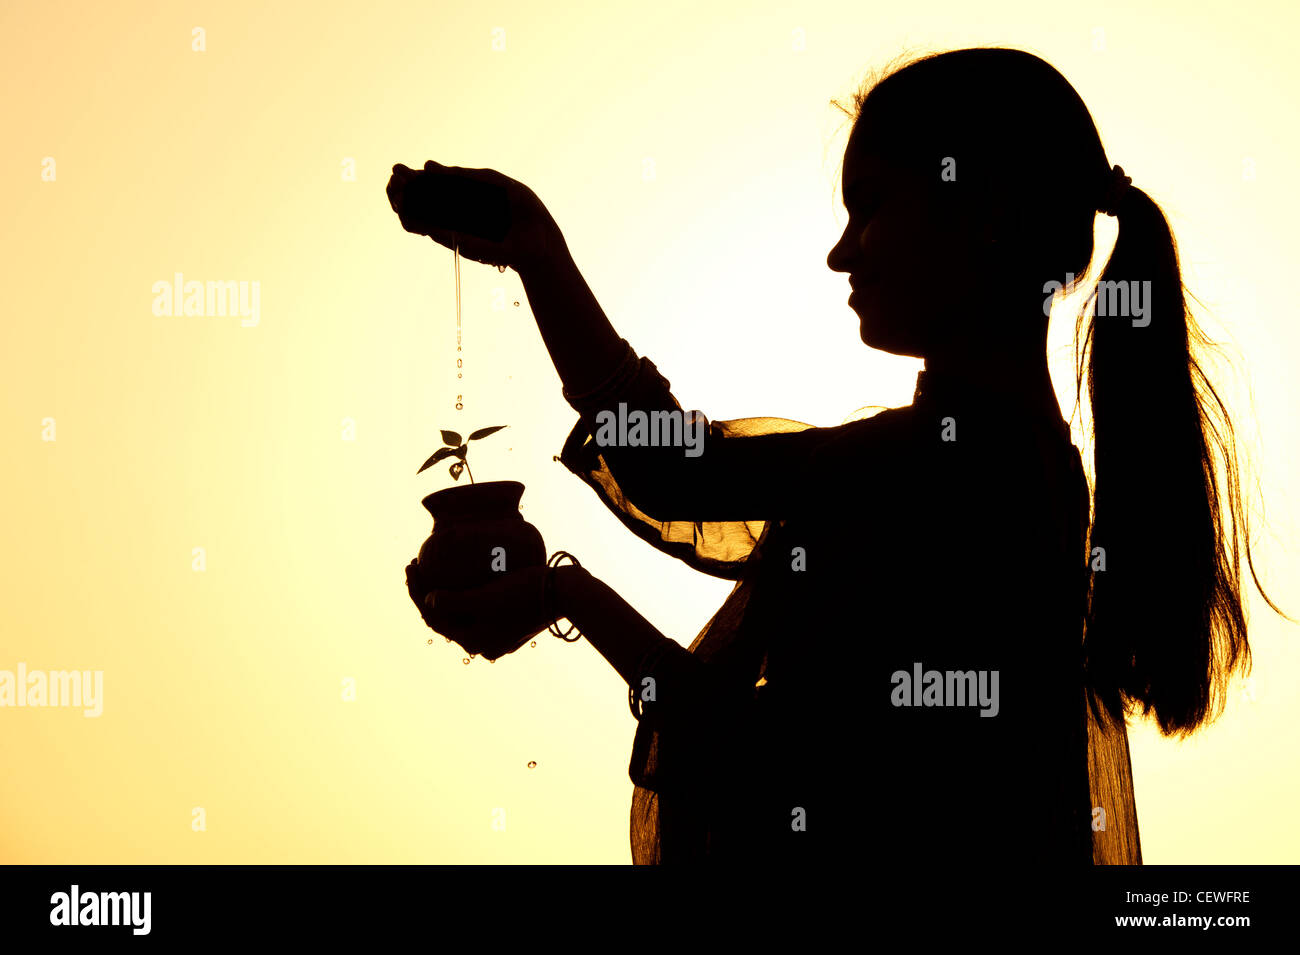 Indian teenage girl sprinkling water over a plant seedling in a clay pot. Silhouette. India Stock Photo